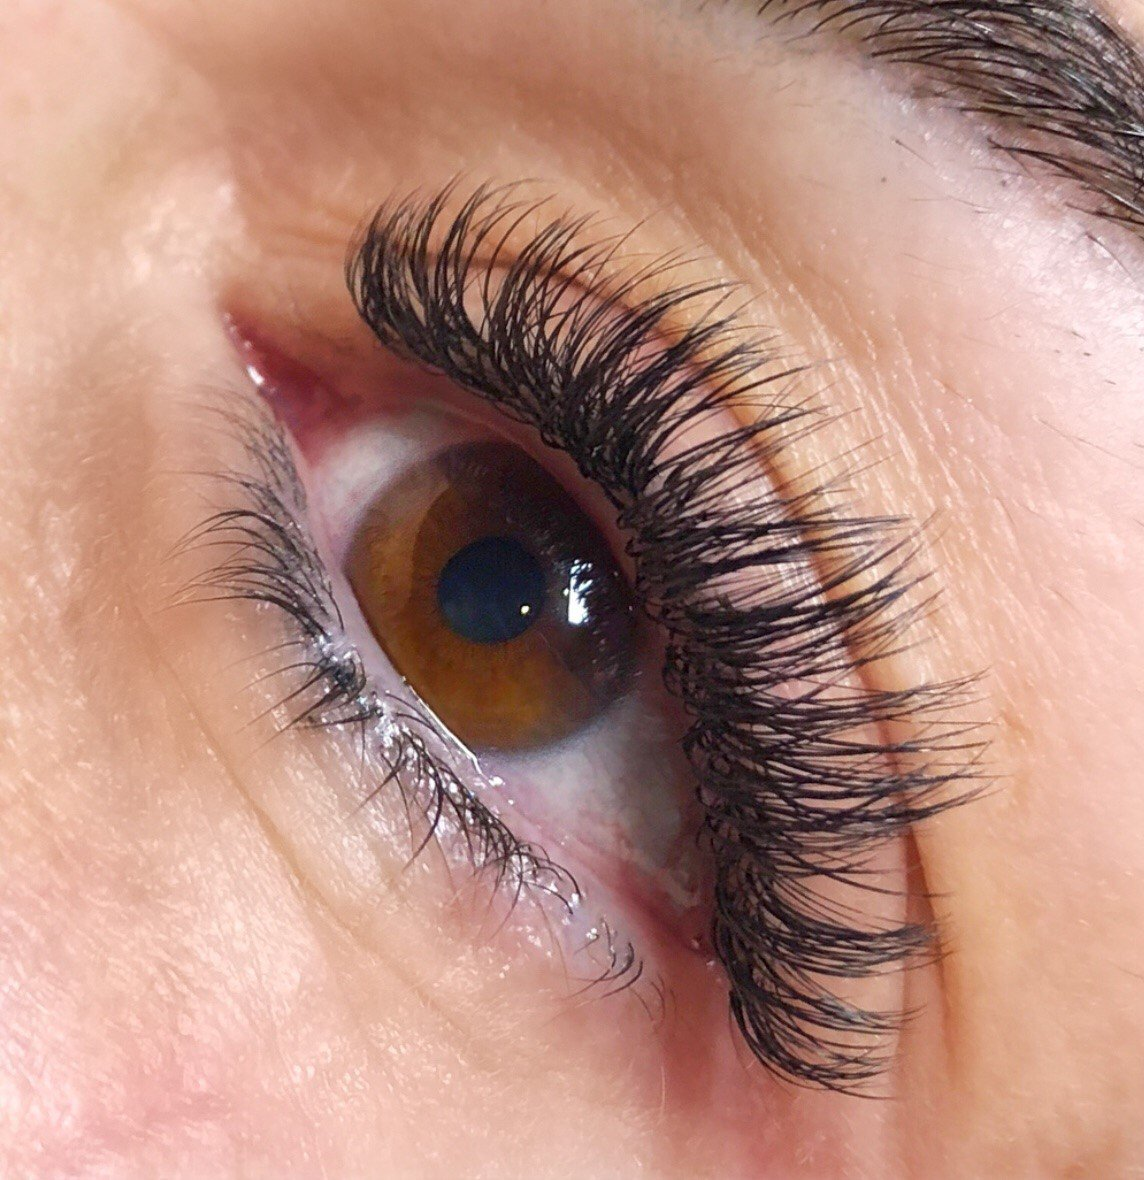 083a62ea357 ... set using Xtreme Lashes Faux Mink X-Wrap Lashes X40: 0.15 mm diameter  mixed with X50: 0.05 mm diameter Volumation fans   7-11 mm length # xtremelashes ...